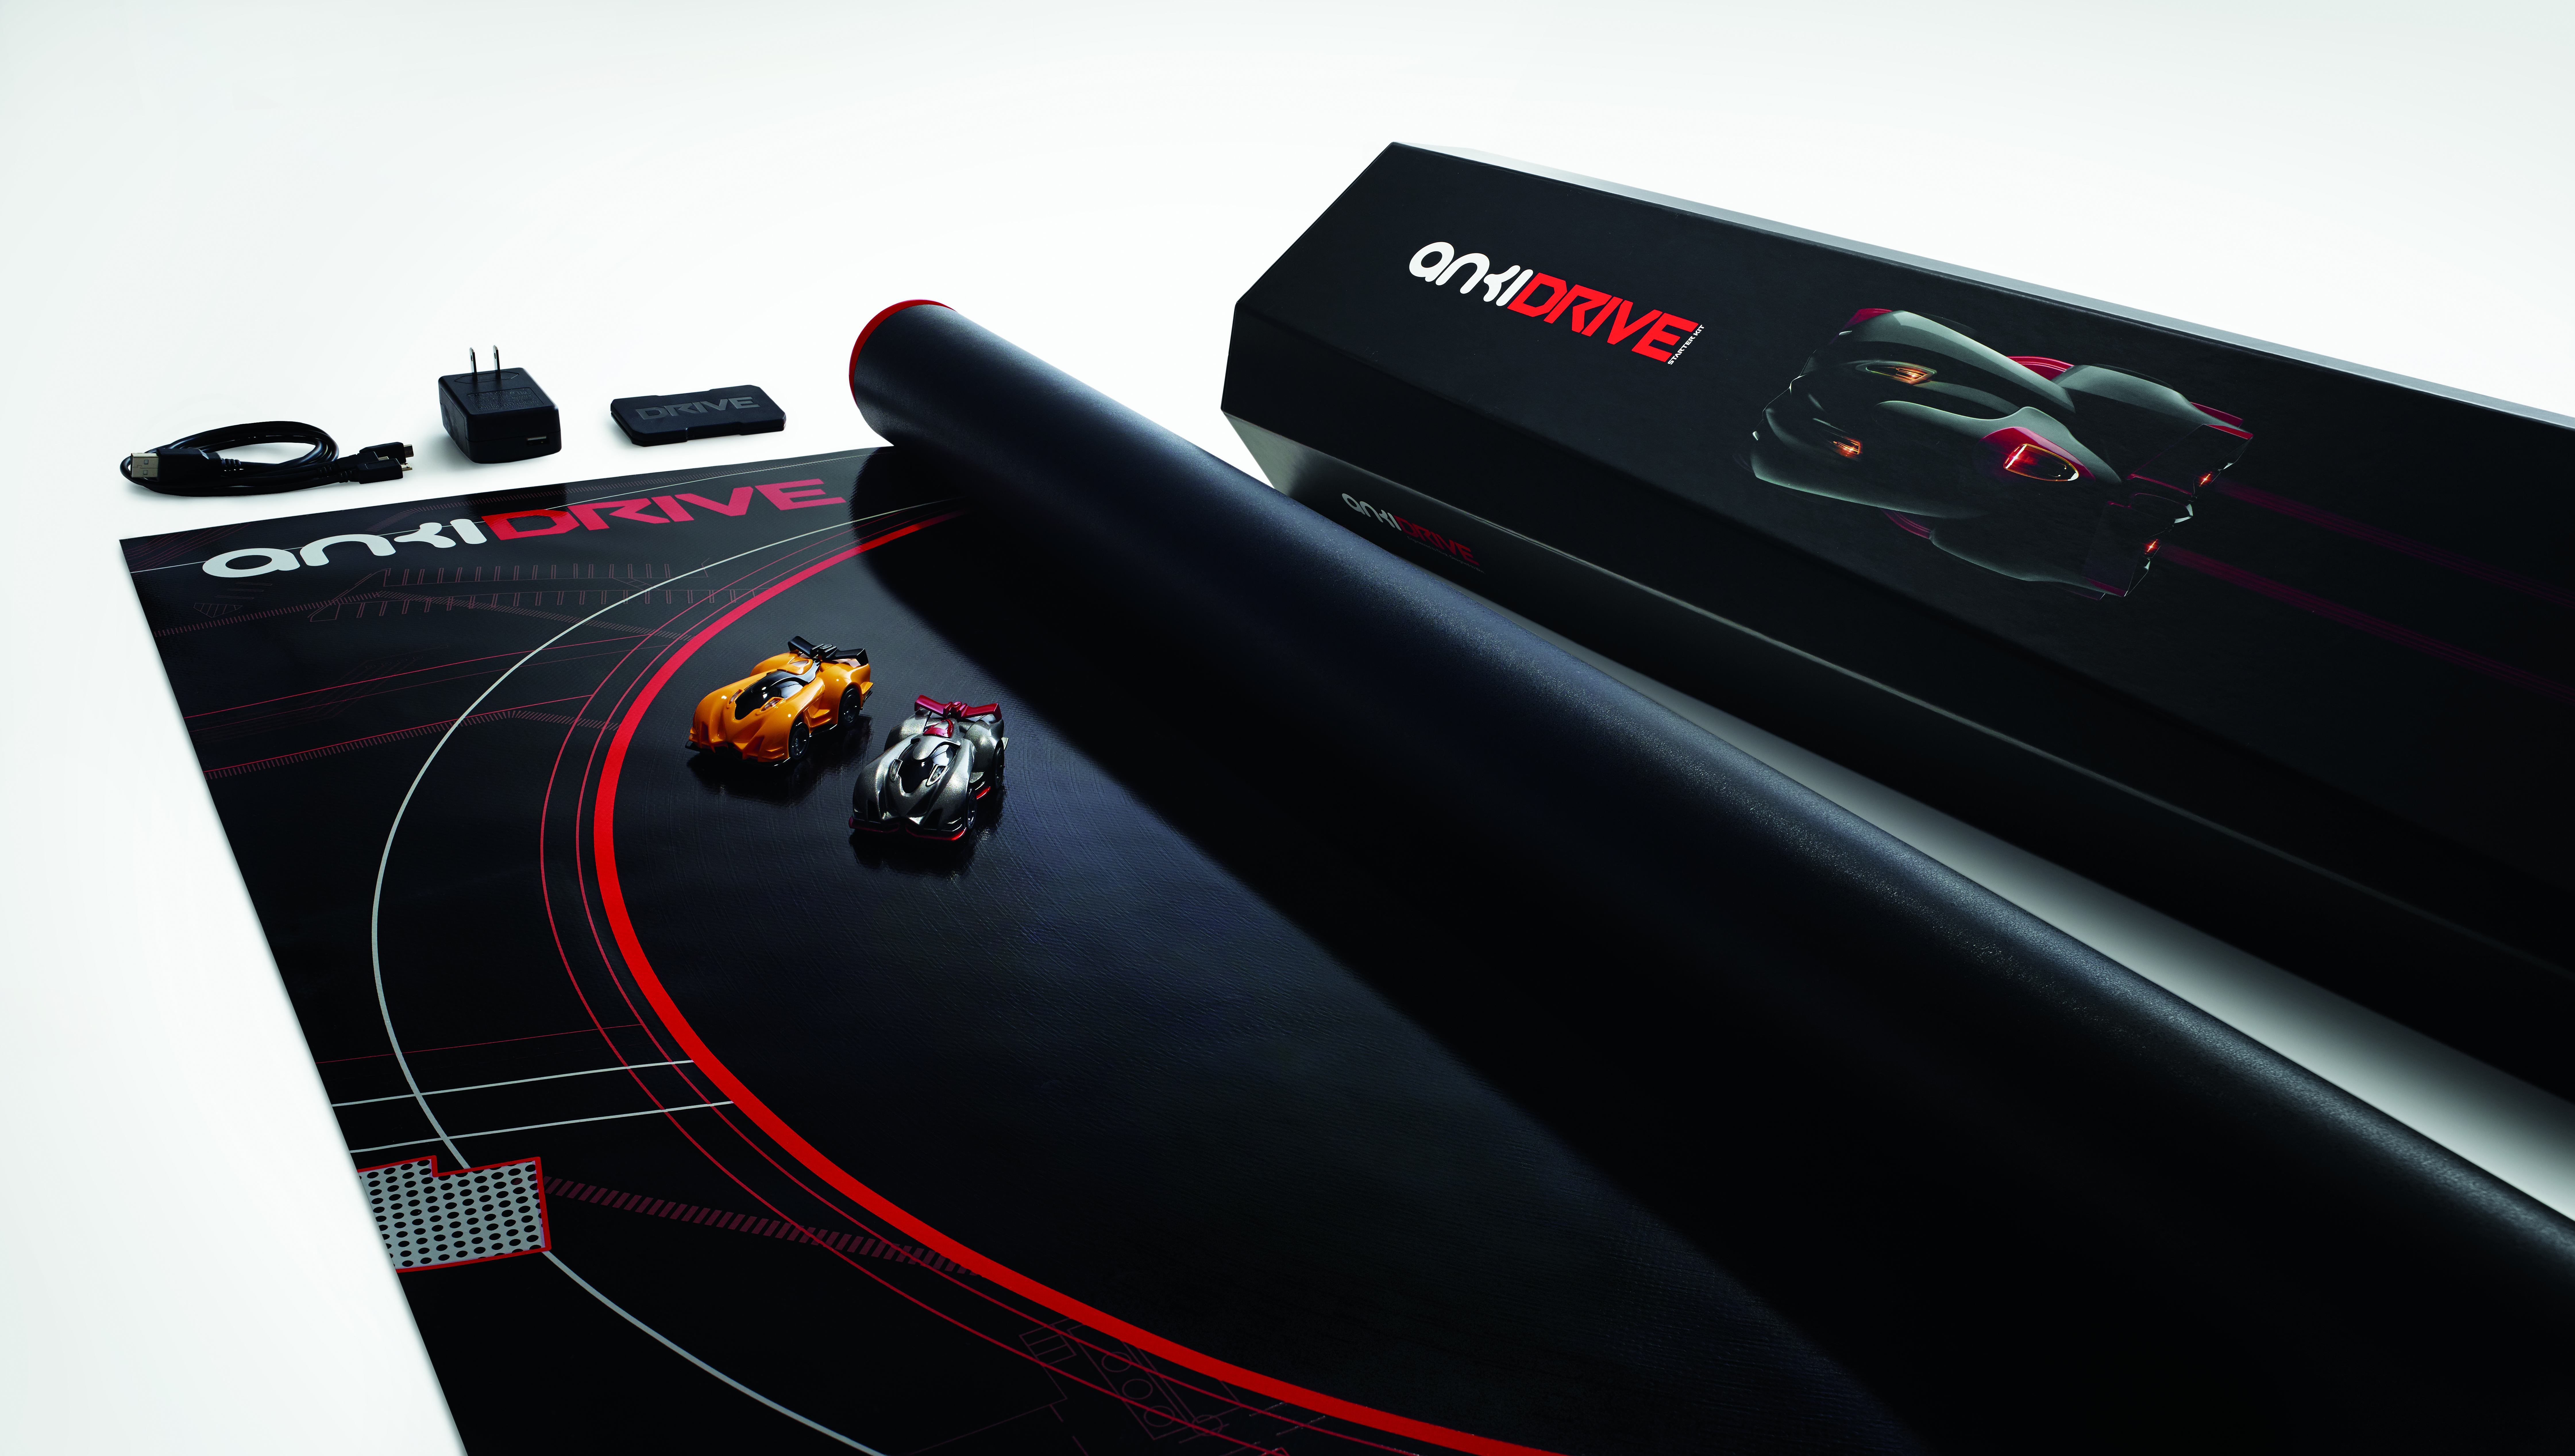 The Anki Drive game uses AI-enabled stock cars that players can control with their smartphones.